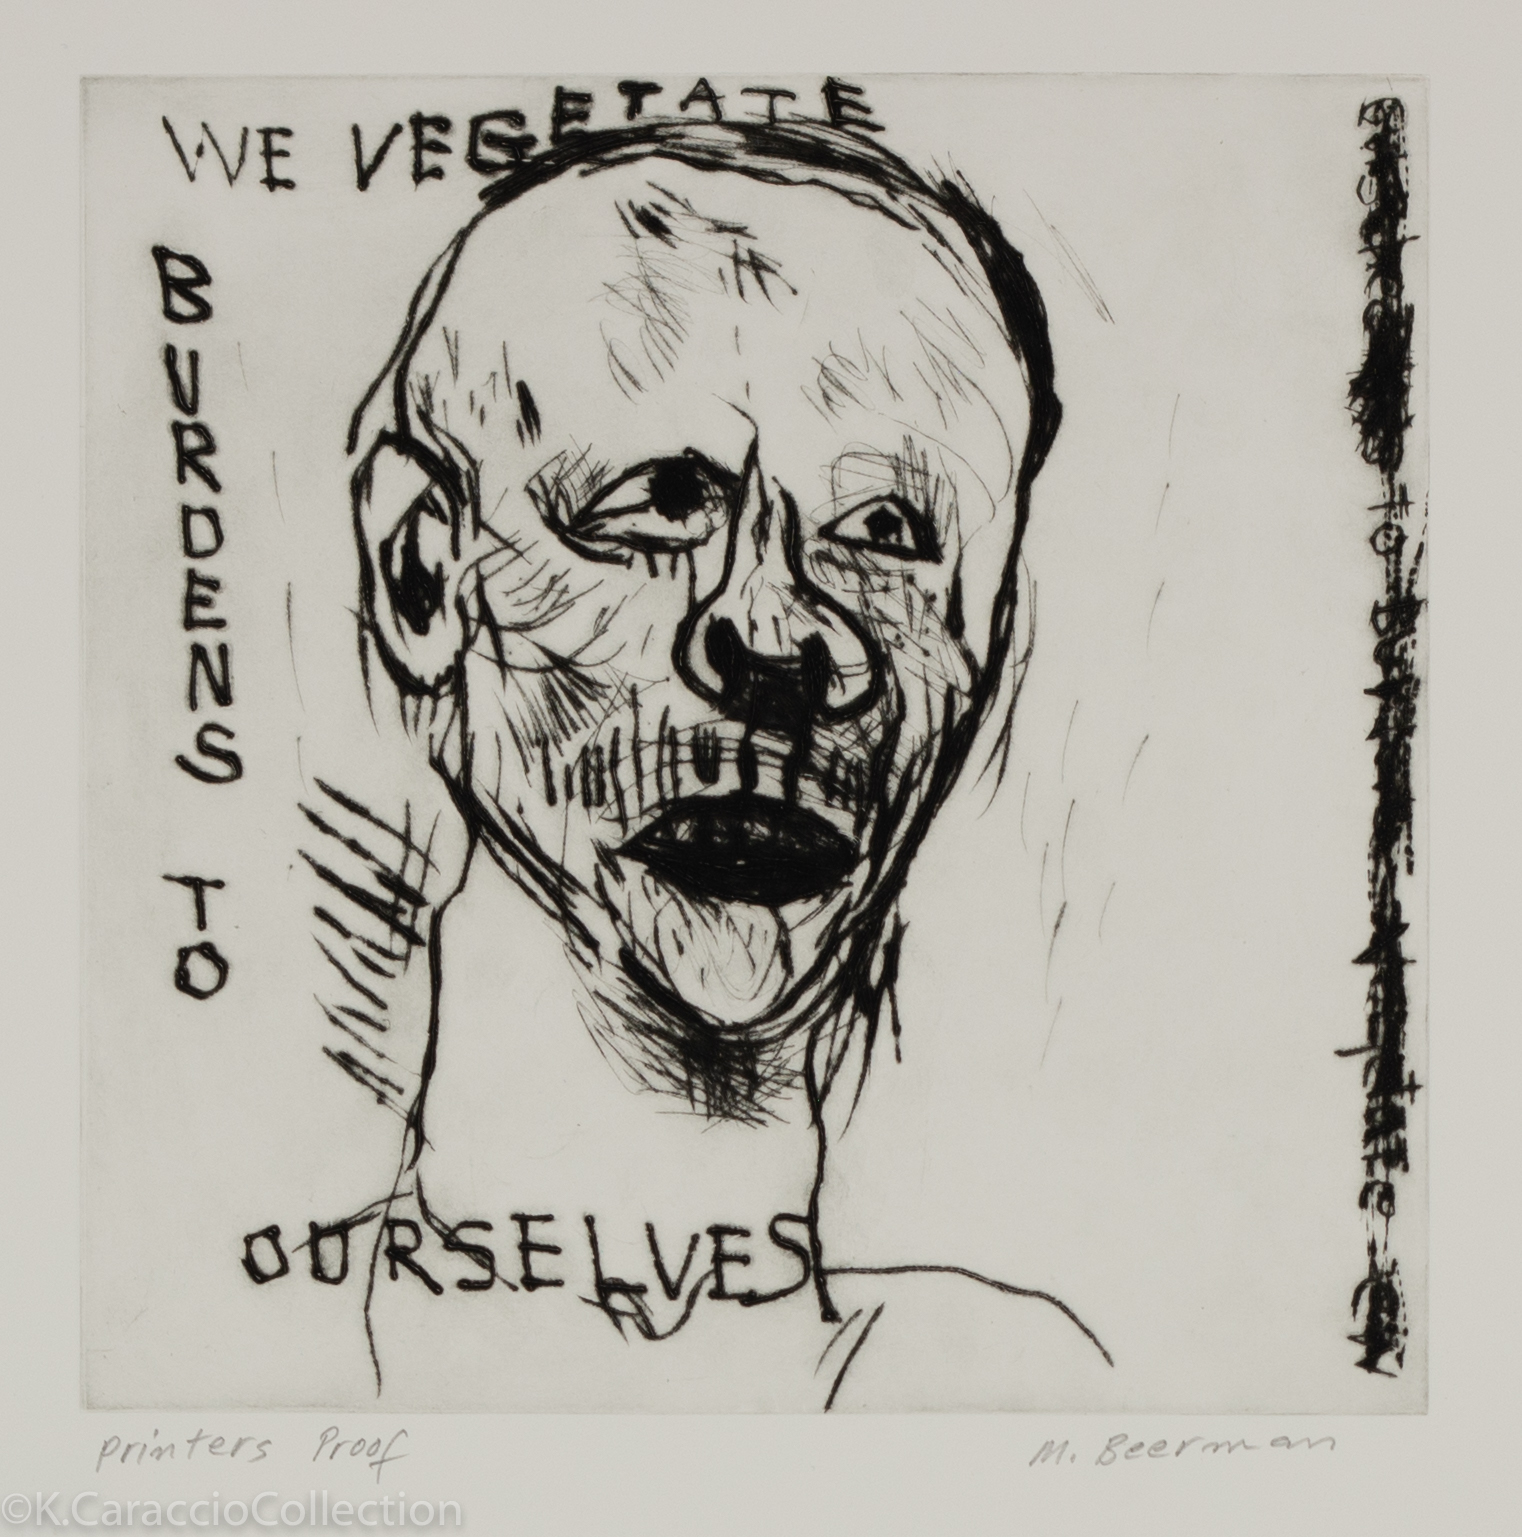 We Vegetate, a burden to ourselves, 1999